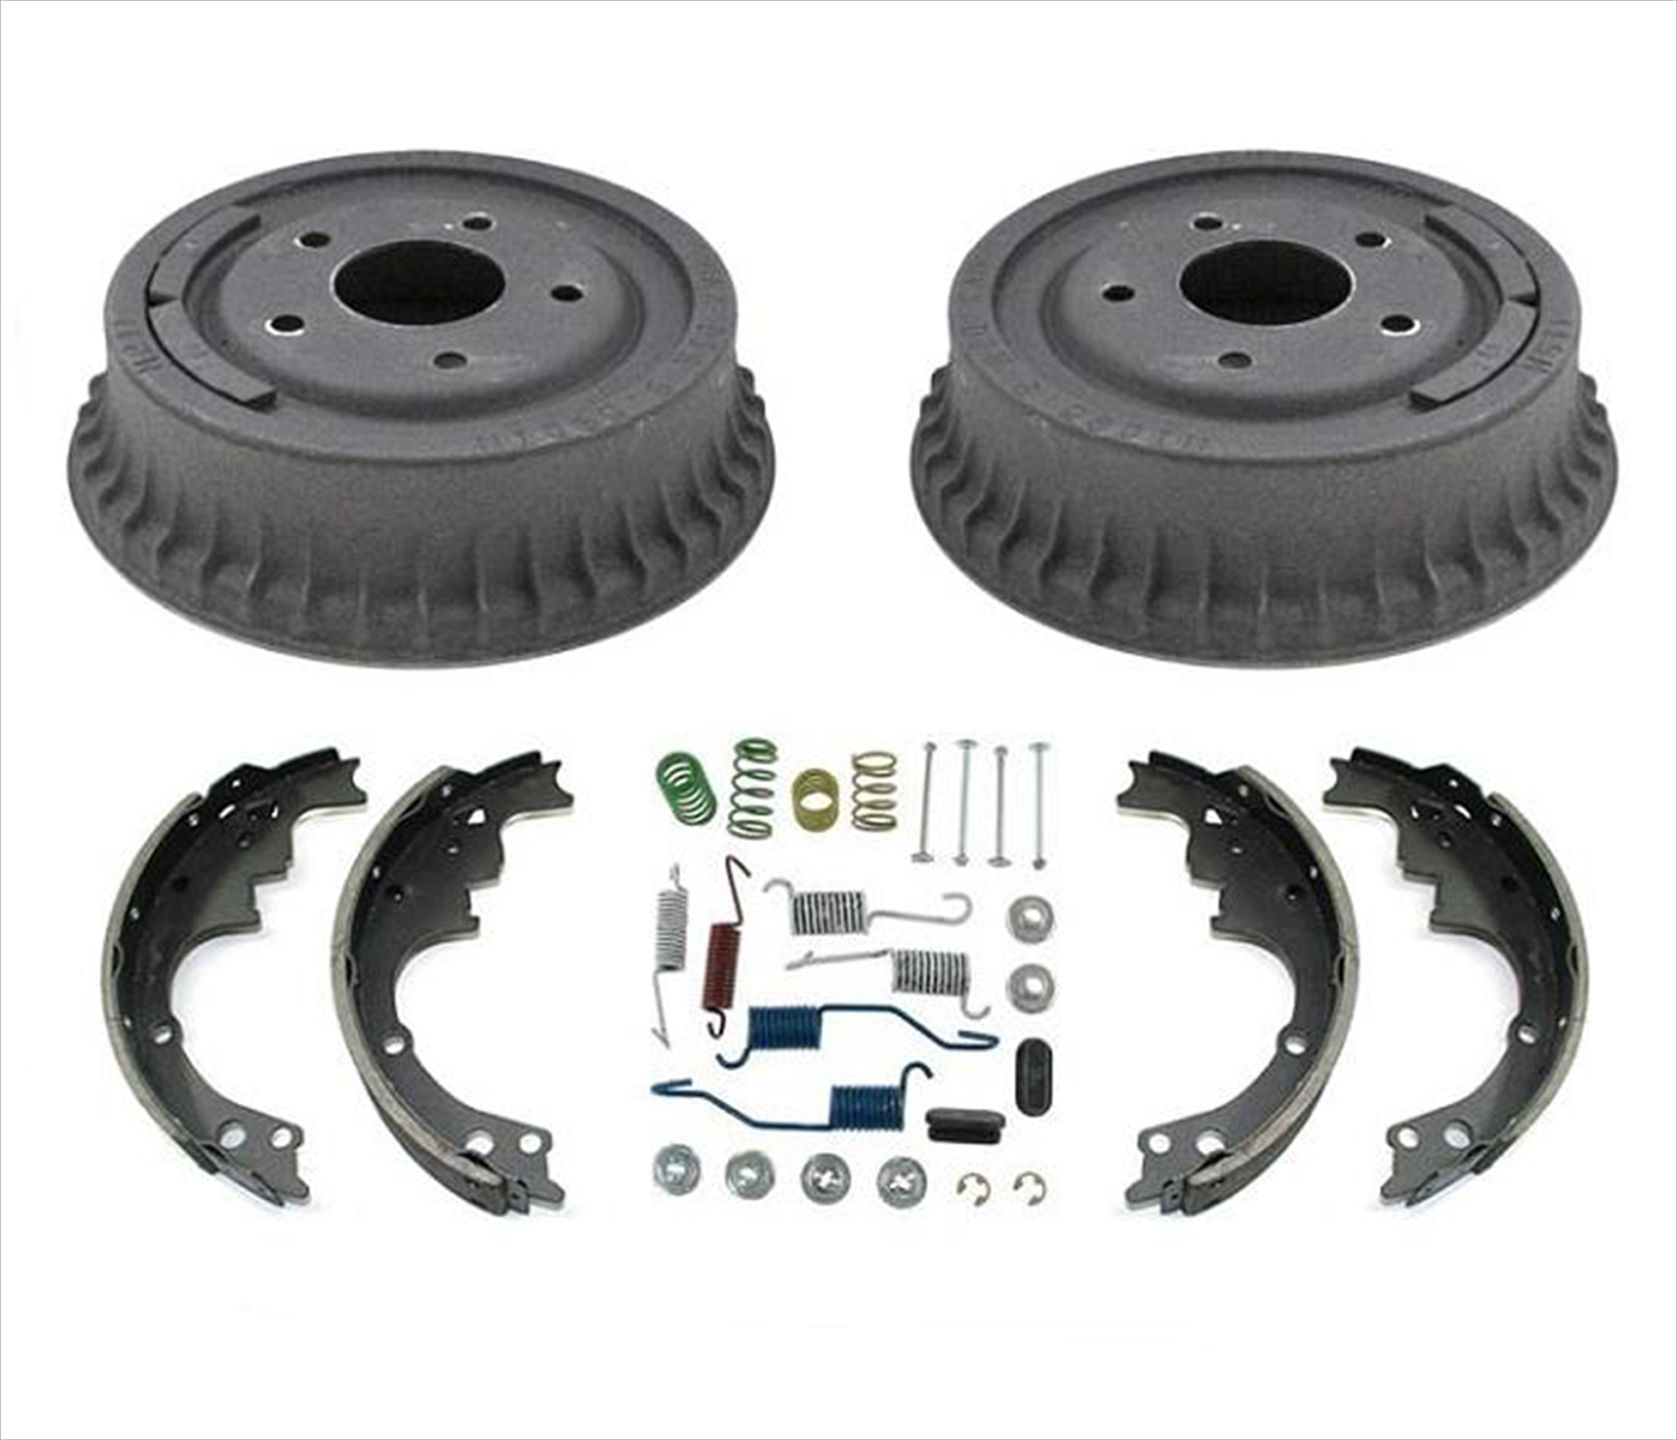 Both Left and Right with 2 Years Manufacturer Warranty 2014 For Chevrolet Cruze Rear Drum Brake Shoes Set